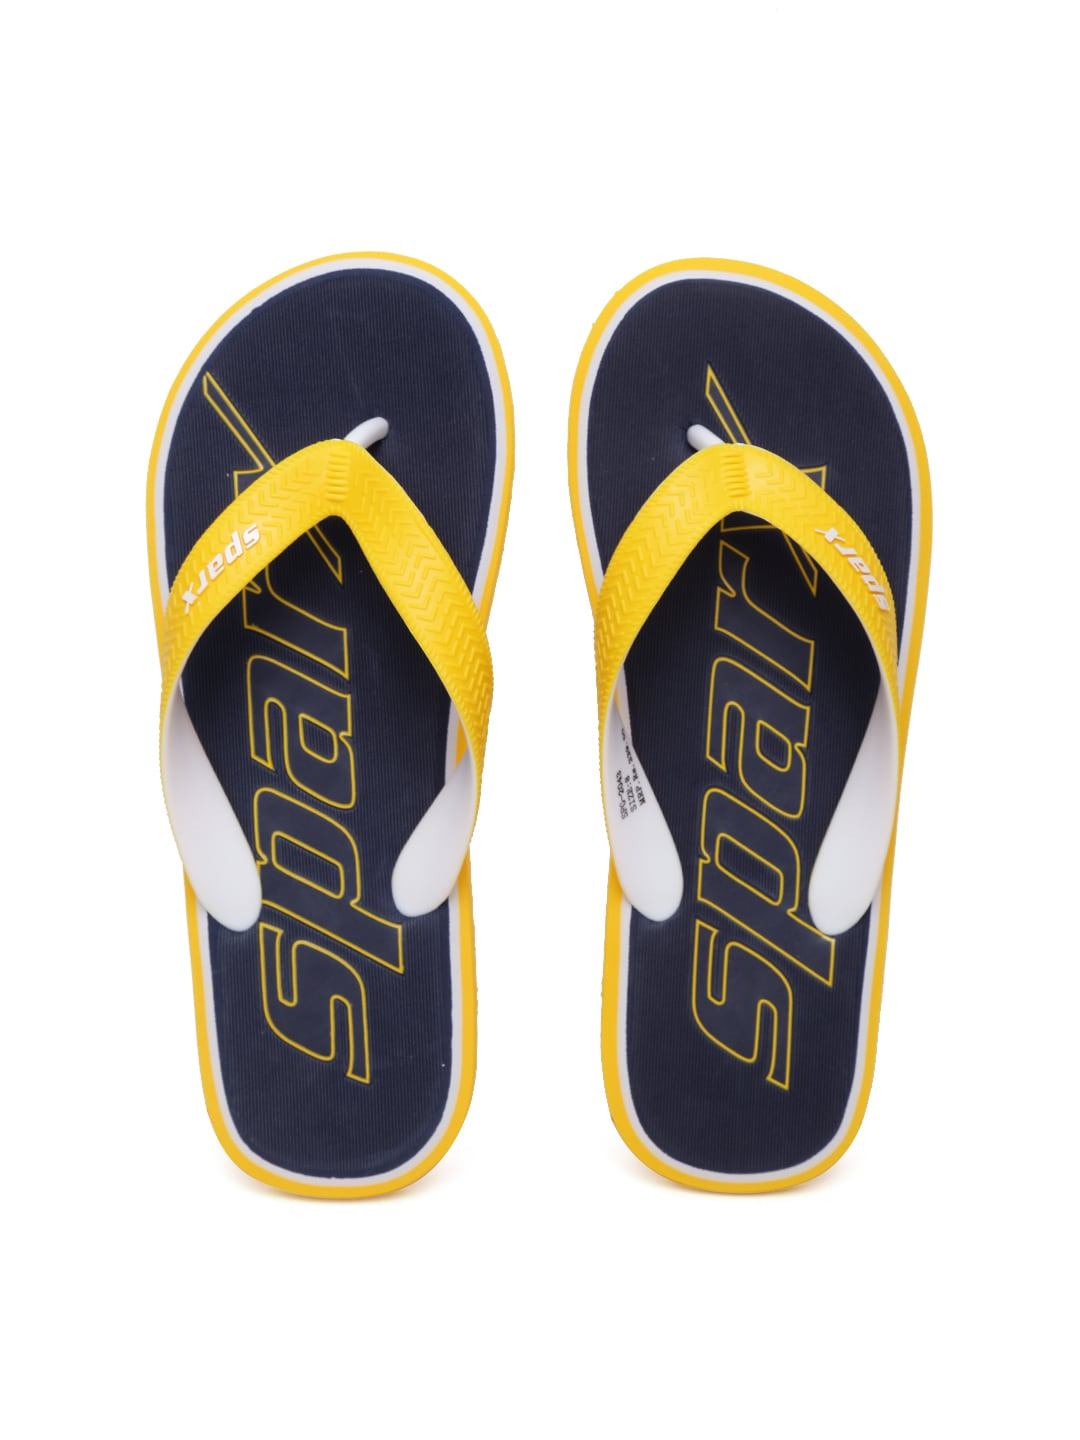 79273e55b737 Sparx sf2043g-blue-yellow Men Yellow And Navy Textured Flip Flops- Price in  India